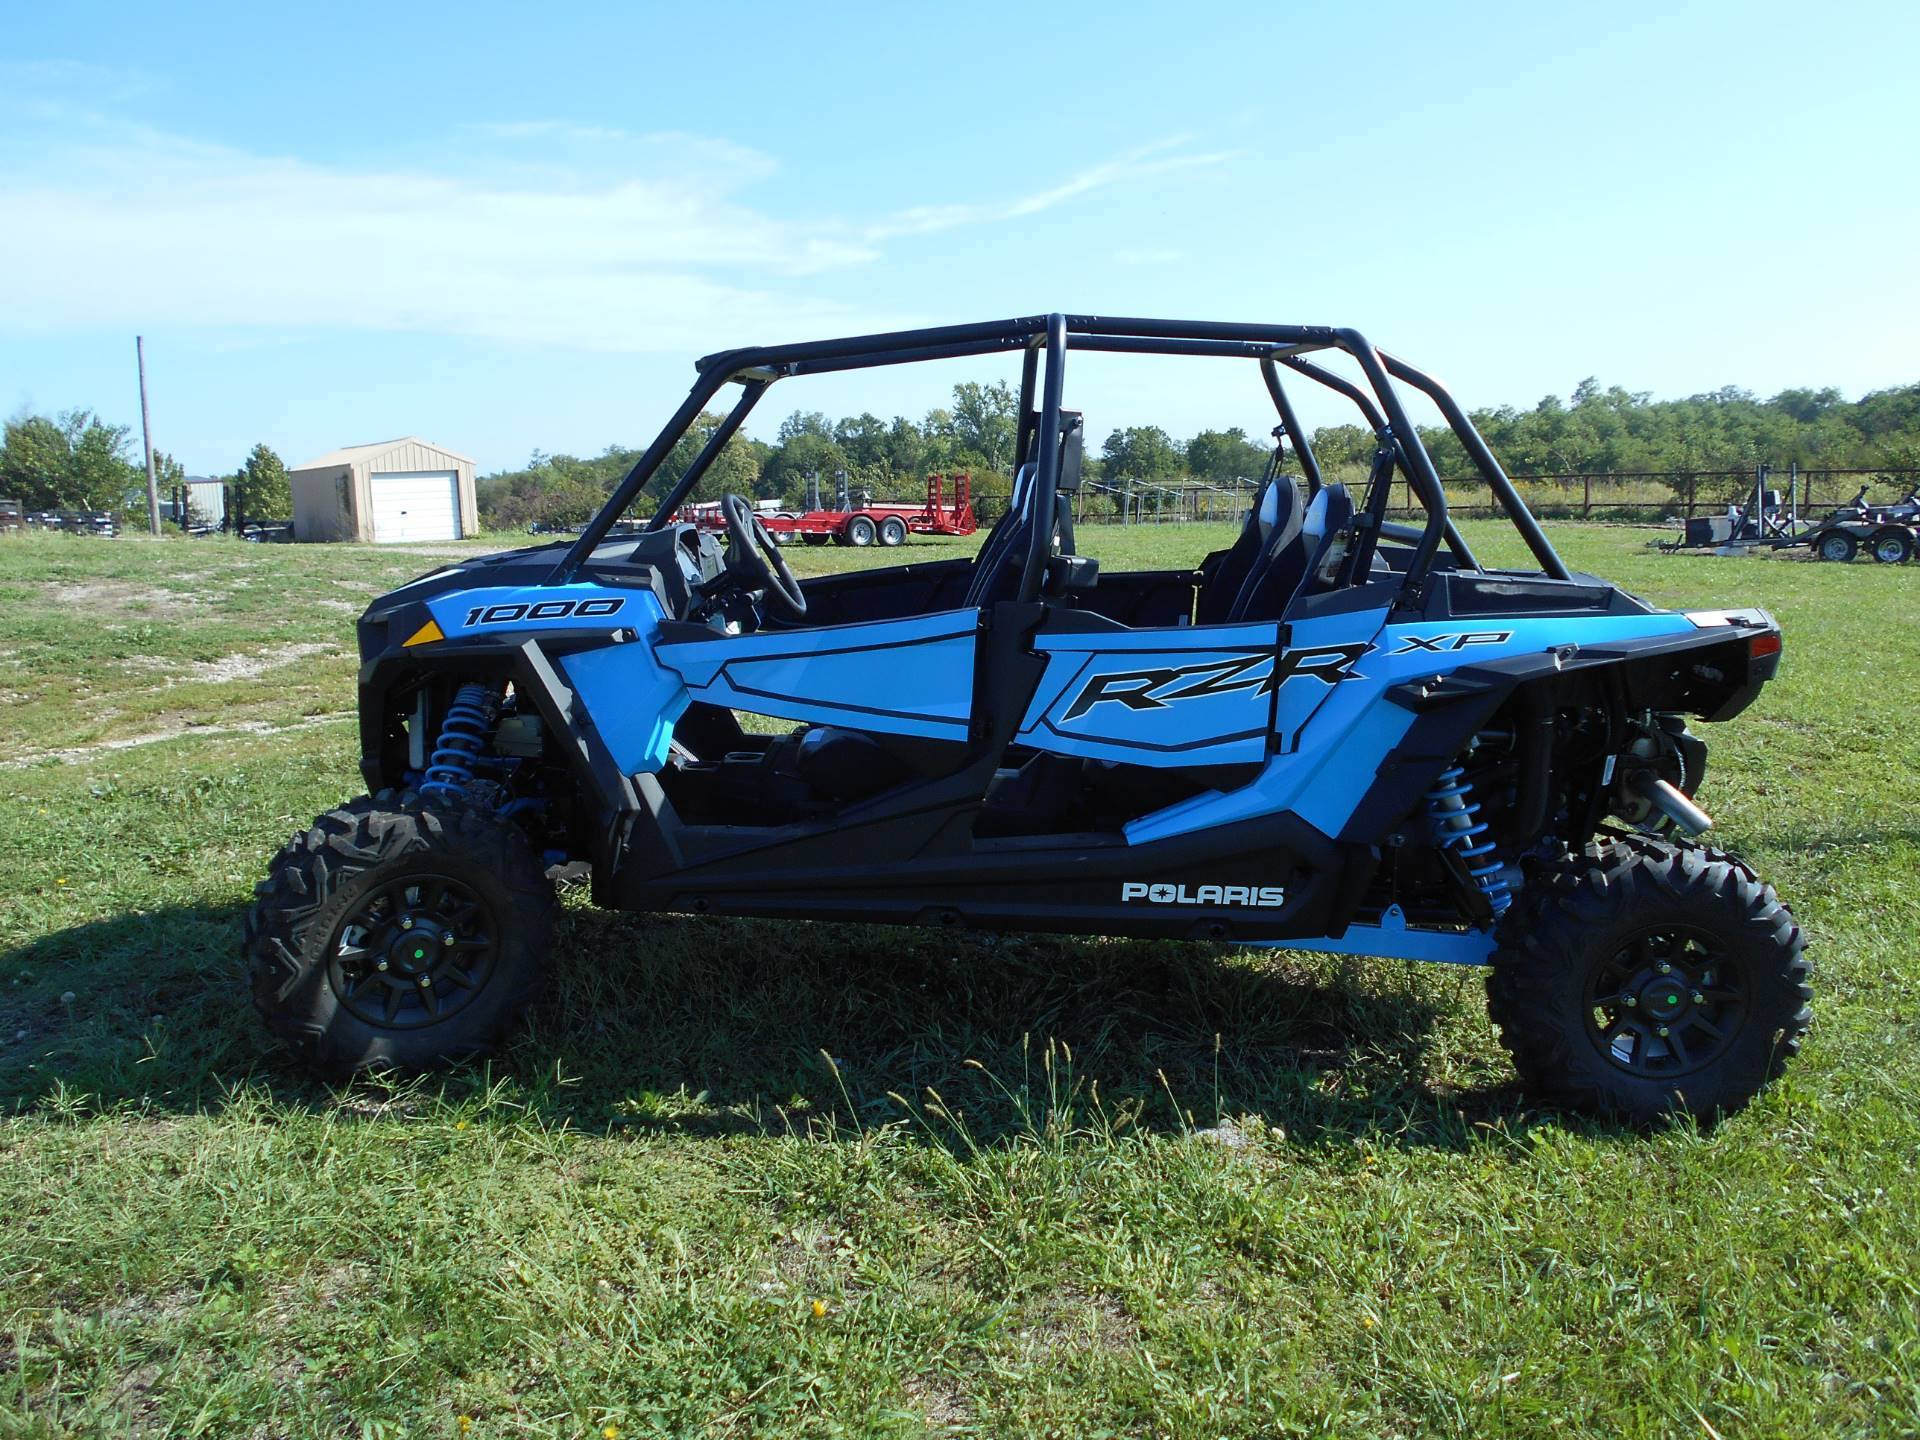 2020 Polaris RZR XP 4 1000 in Kansas City, Kansas - Photo 2